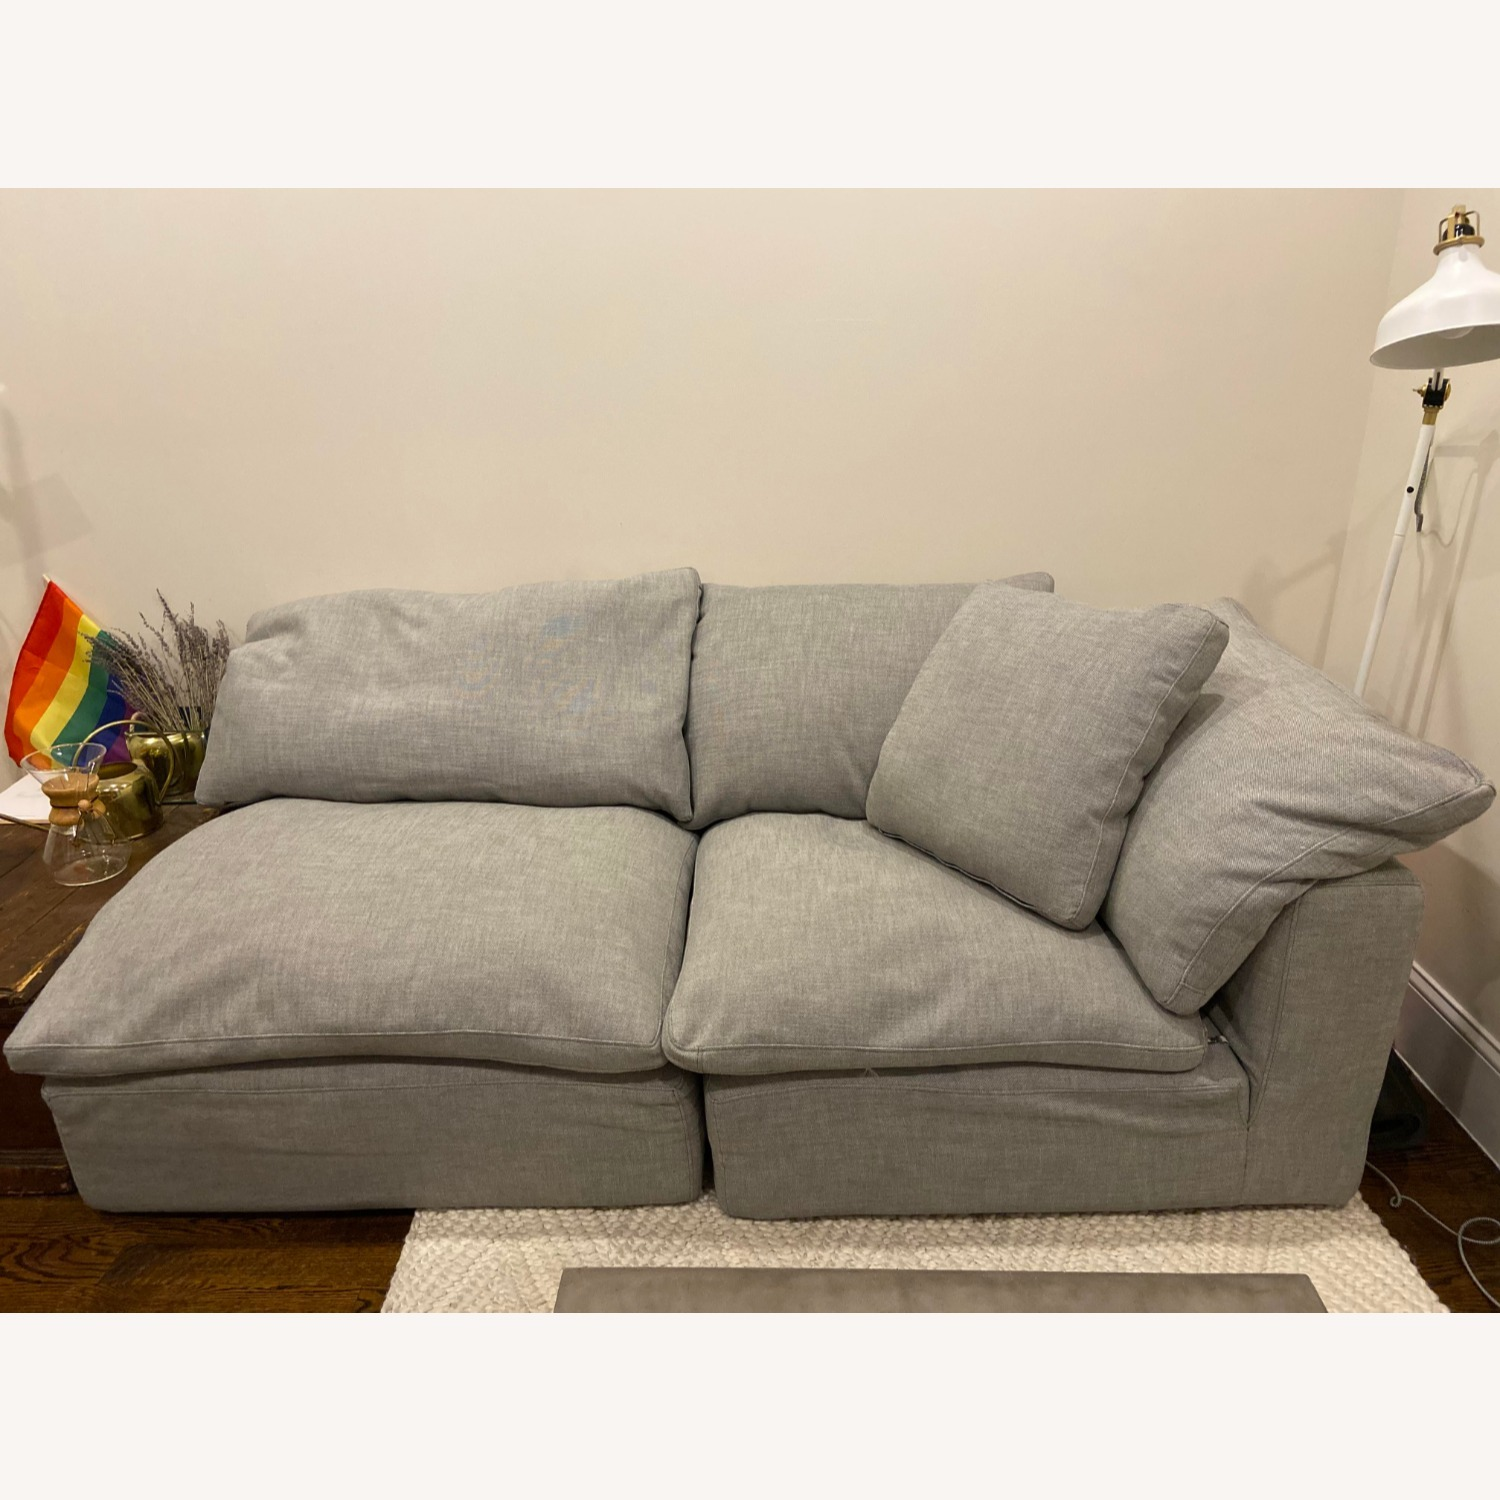 Restoration Hardware Cloud Couch Sectional - image-1